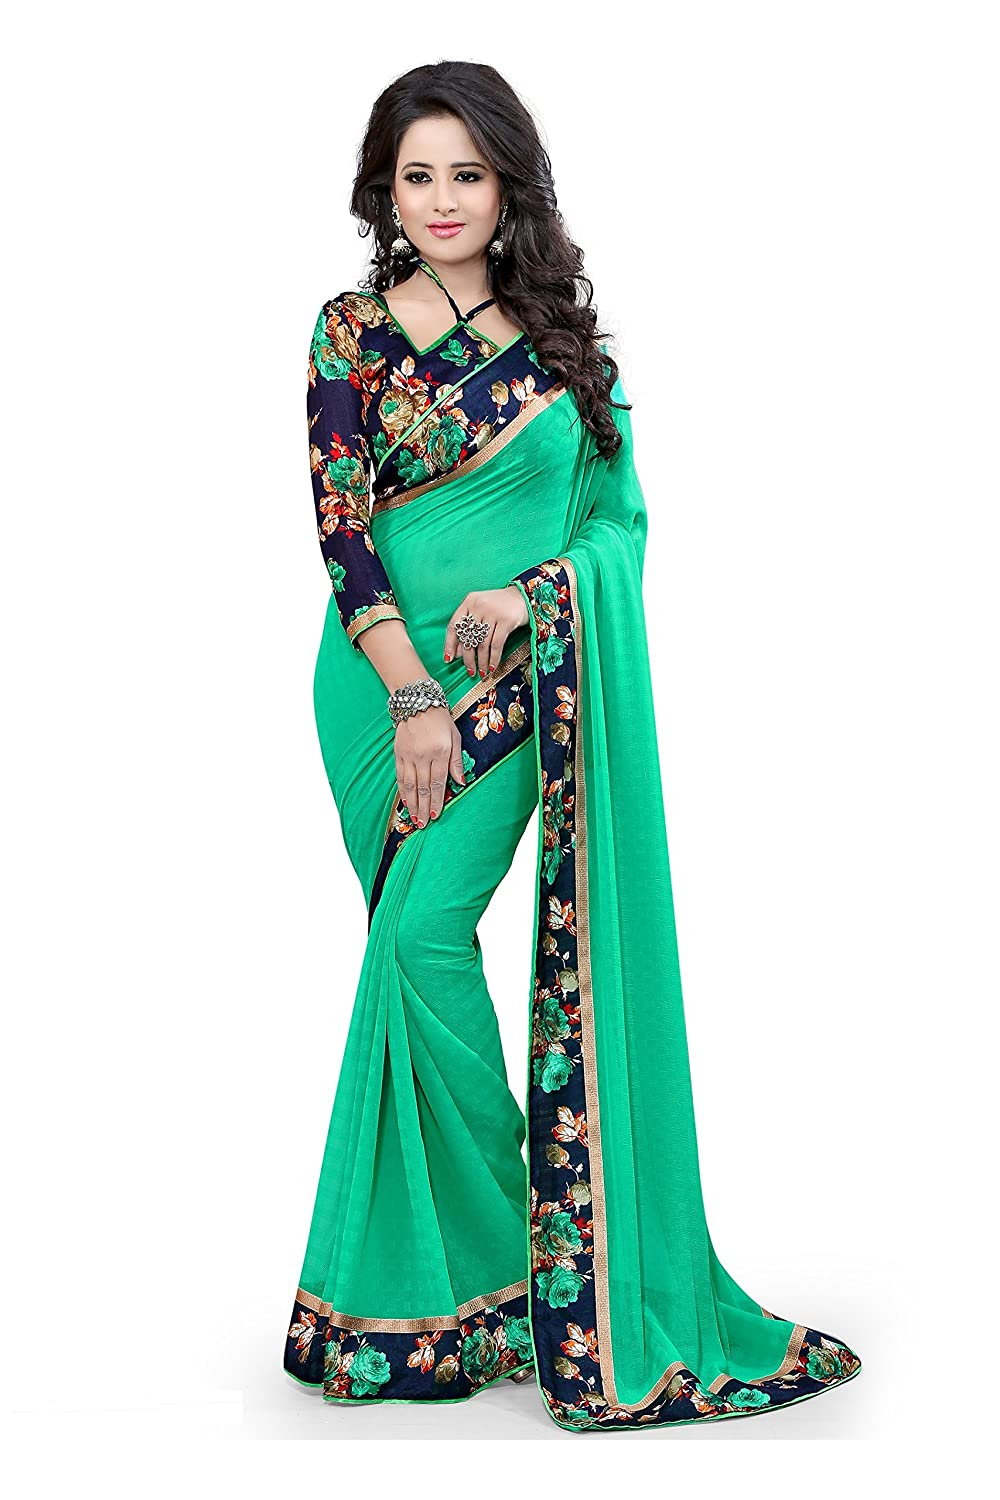 Sarees(Vsaree Womens Clothing Saree For Women Latest Design Collection Material Latest Sarees With Designer Beautyful Bollywood Sarees For Women Party Wear Offer Designer Sarees Wedding,For Women, New Collection Sari)(Sky Blue Peacock Patta With Peacock Blouse)